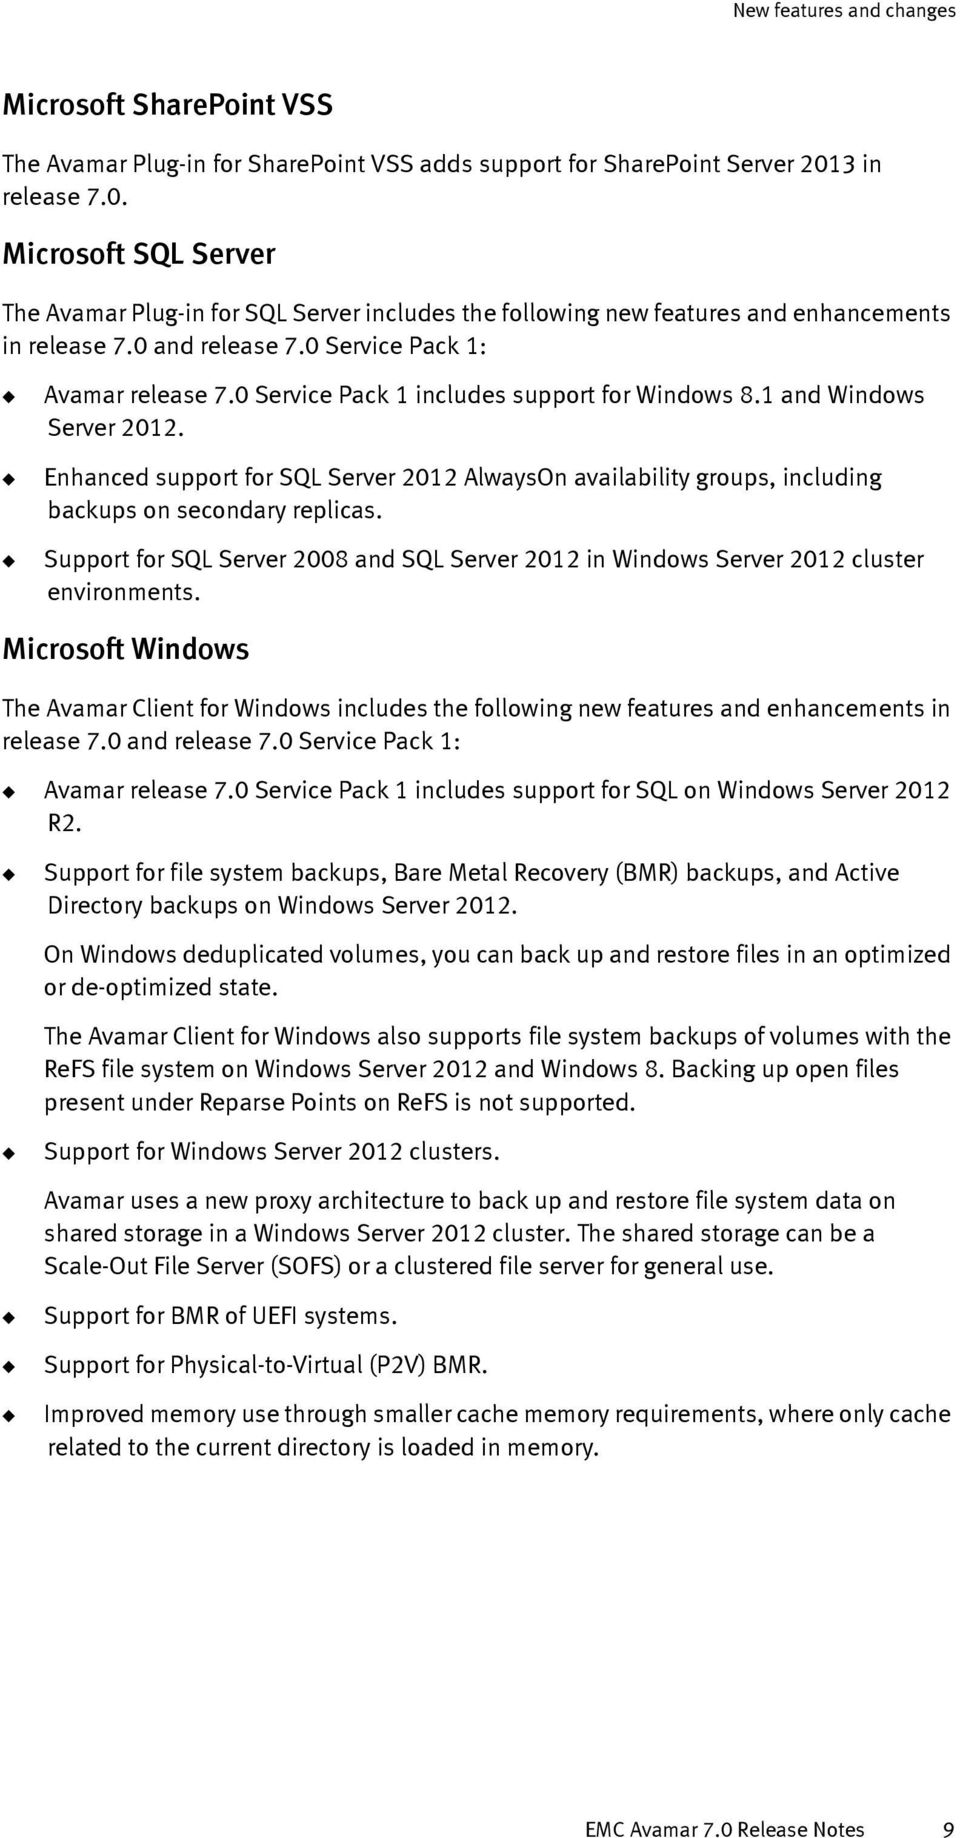 0 Service Pack 1 includes support for Windows 8.1 and Windows Server 2012. Enhanced support for SQL Server 2012 AlwaysOn availability groups, including backups on secondary replicas.